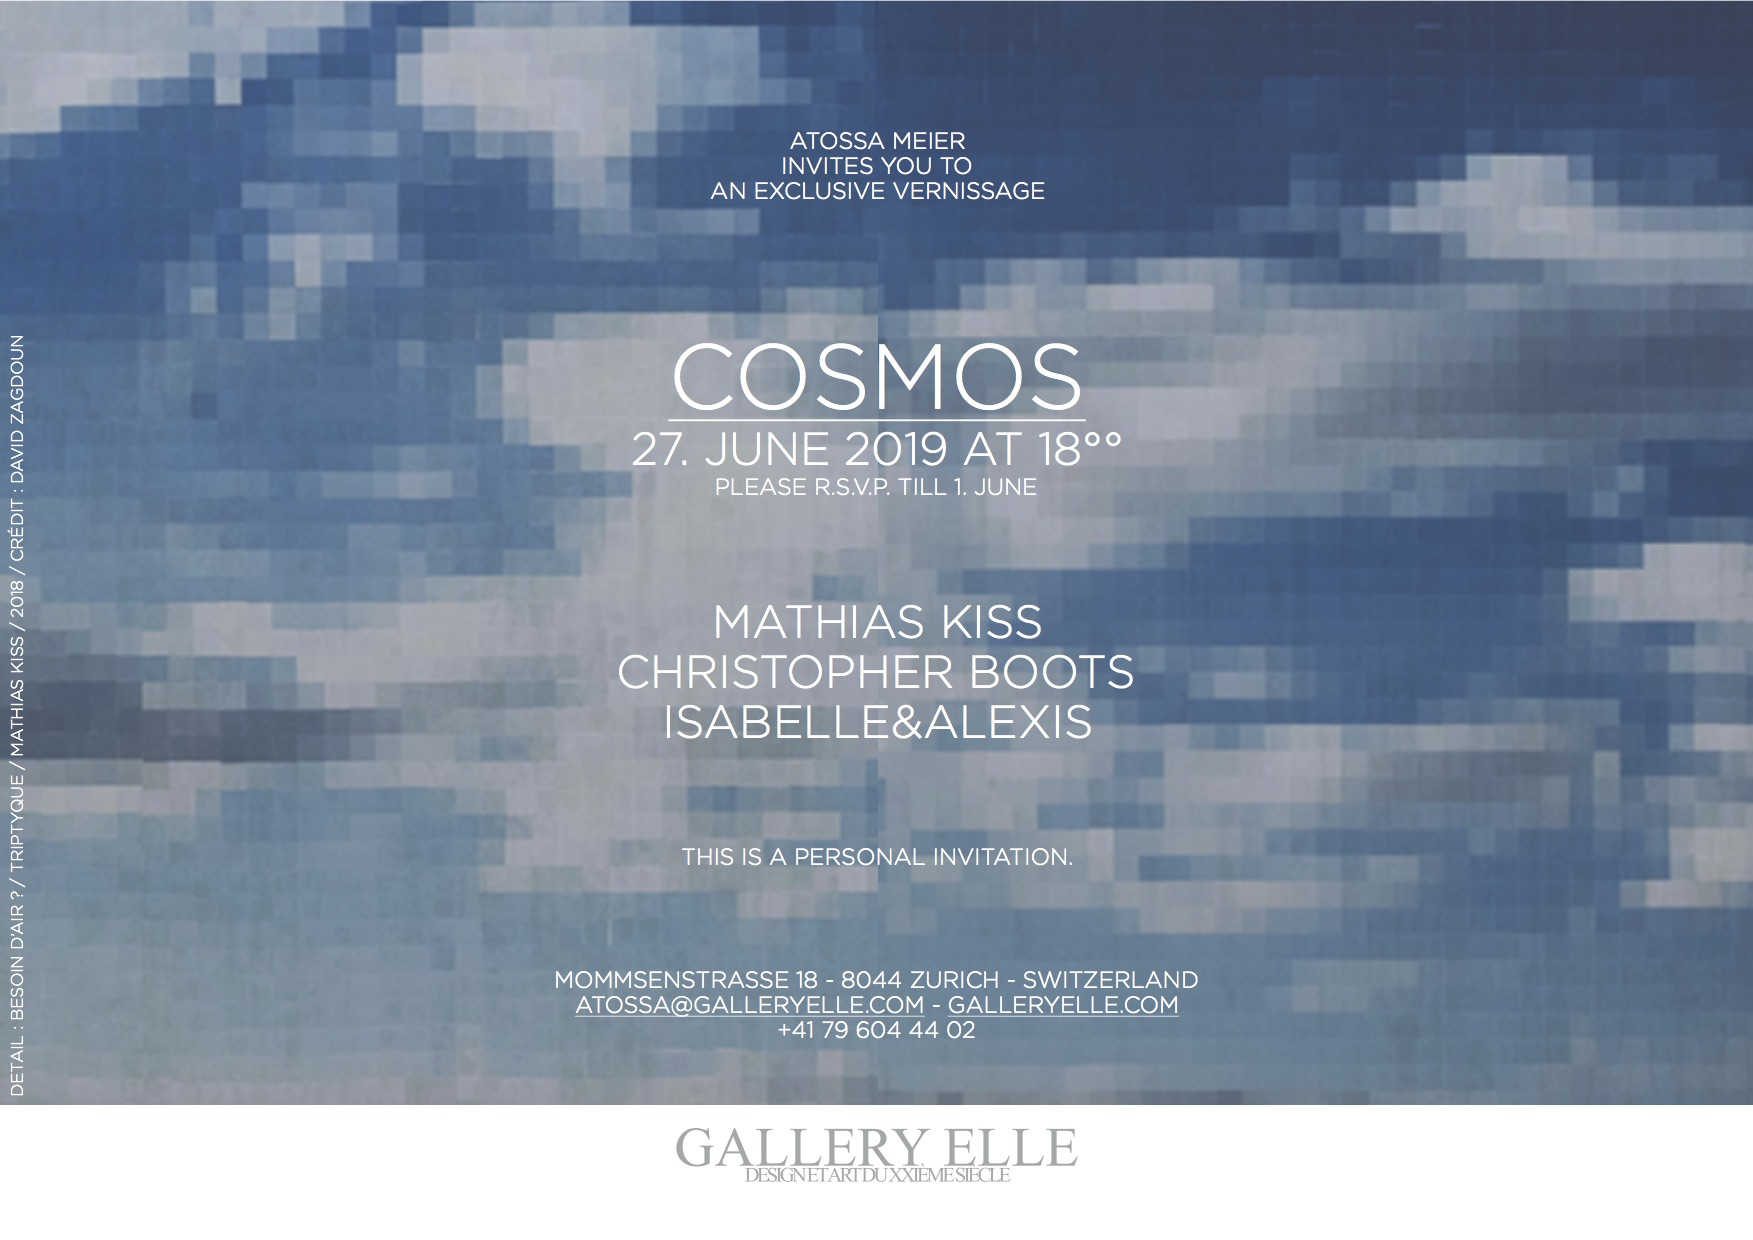 Isabelle & Alexis Photographie Blossom Galerie Daltra Zurich Cosmos Exhibition Mathias Kiss Christopher Boots Gallery Elle